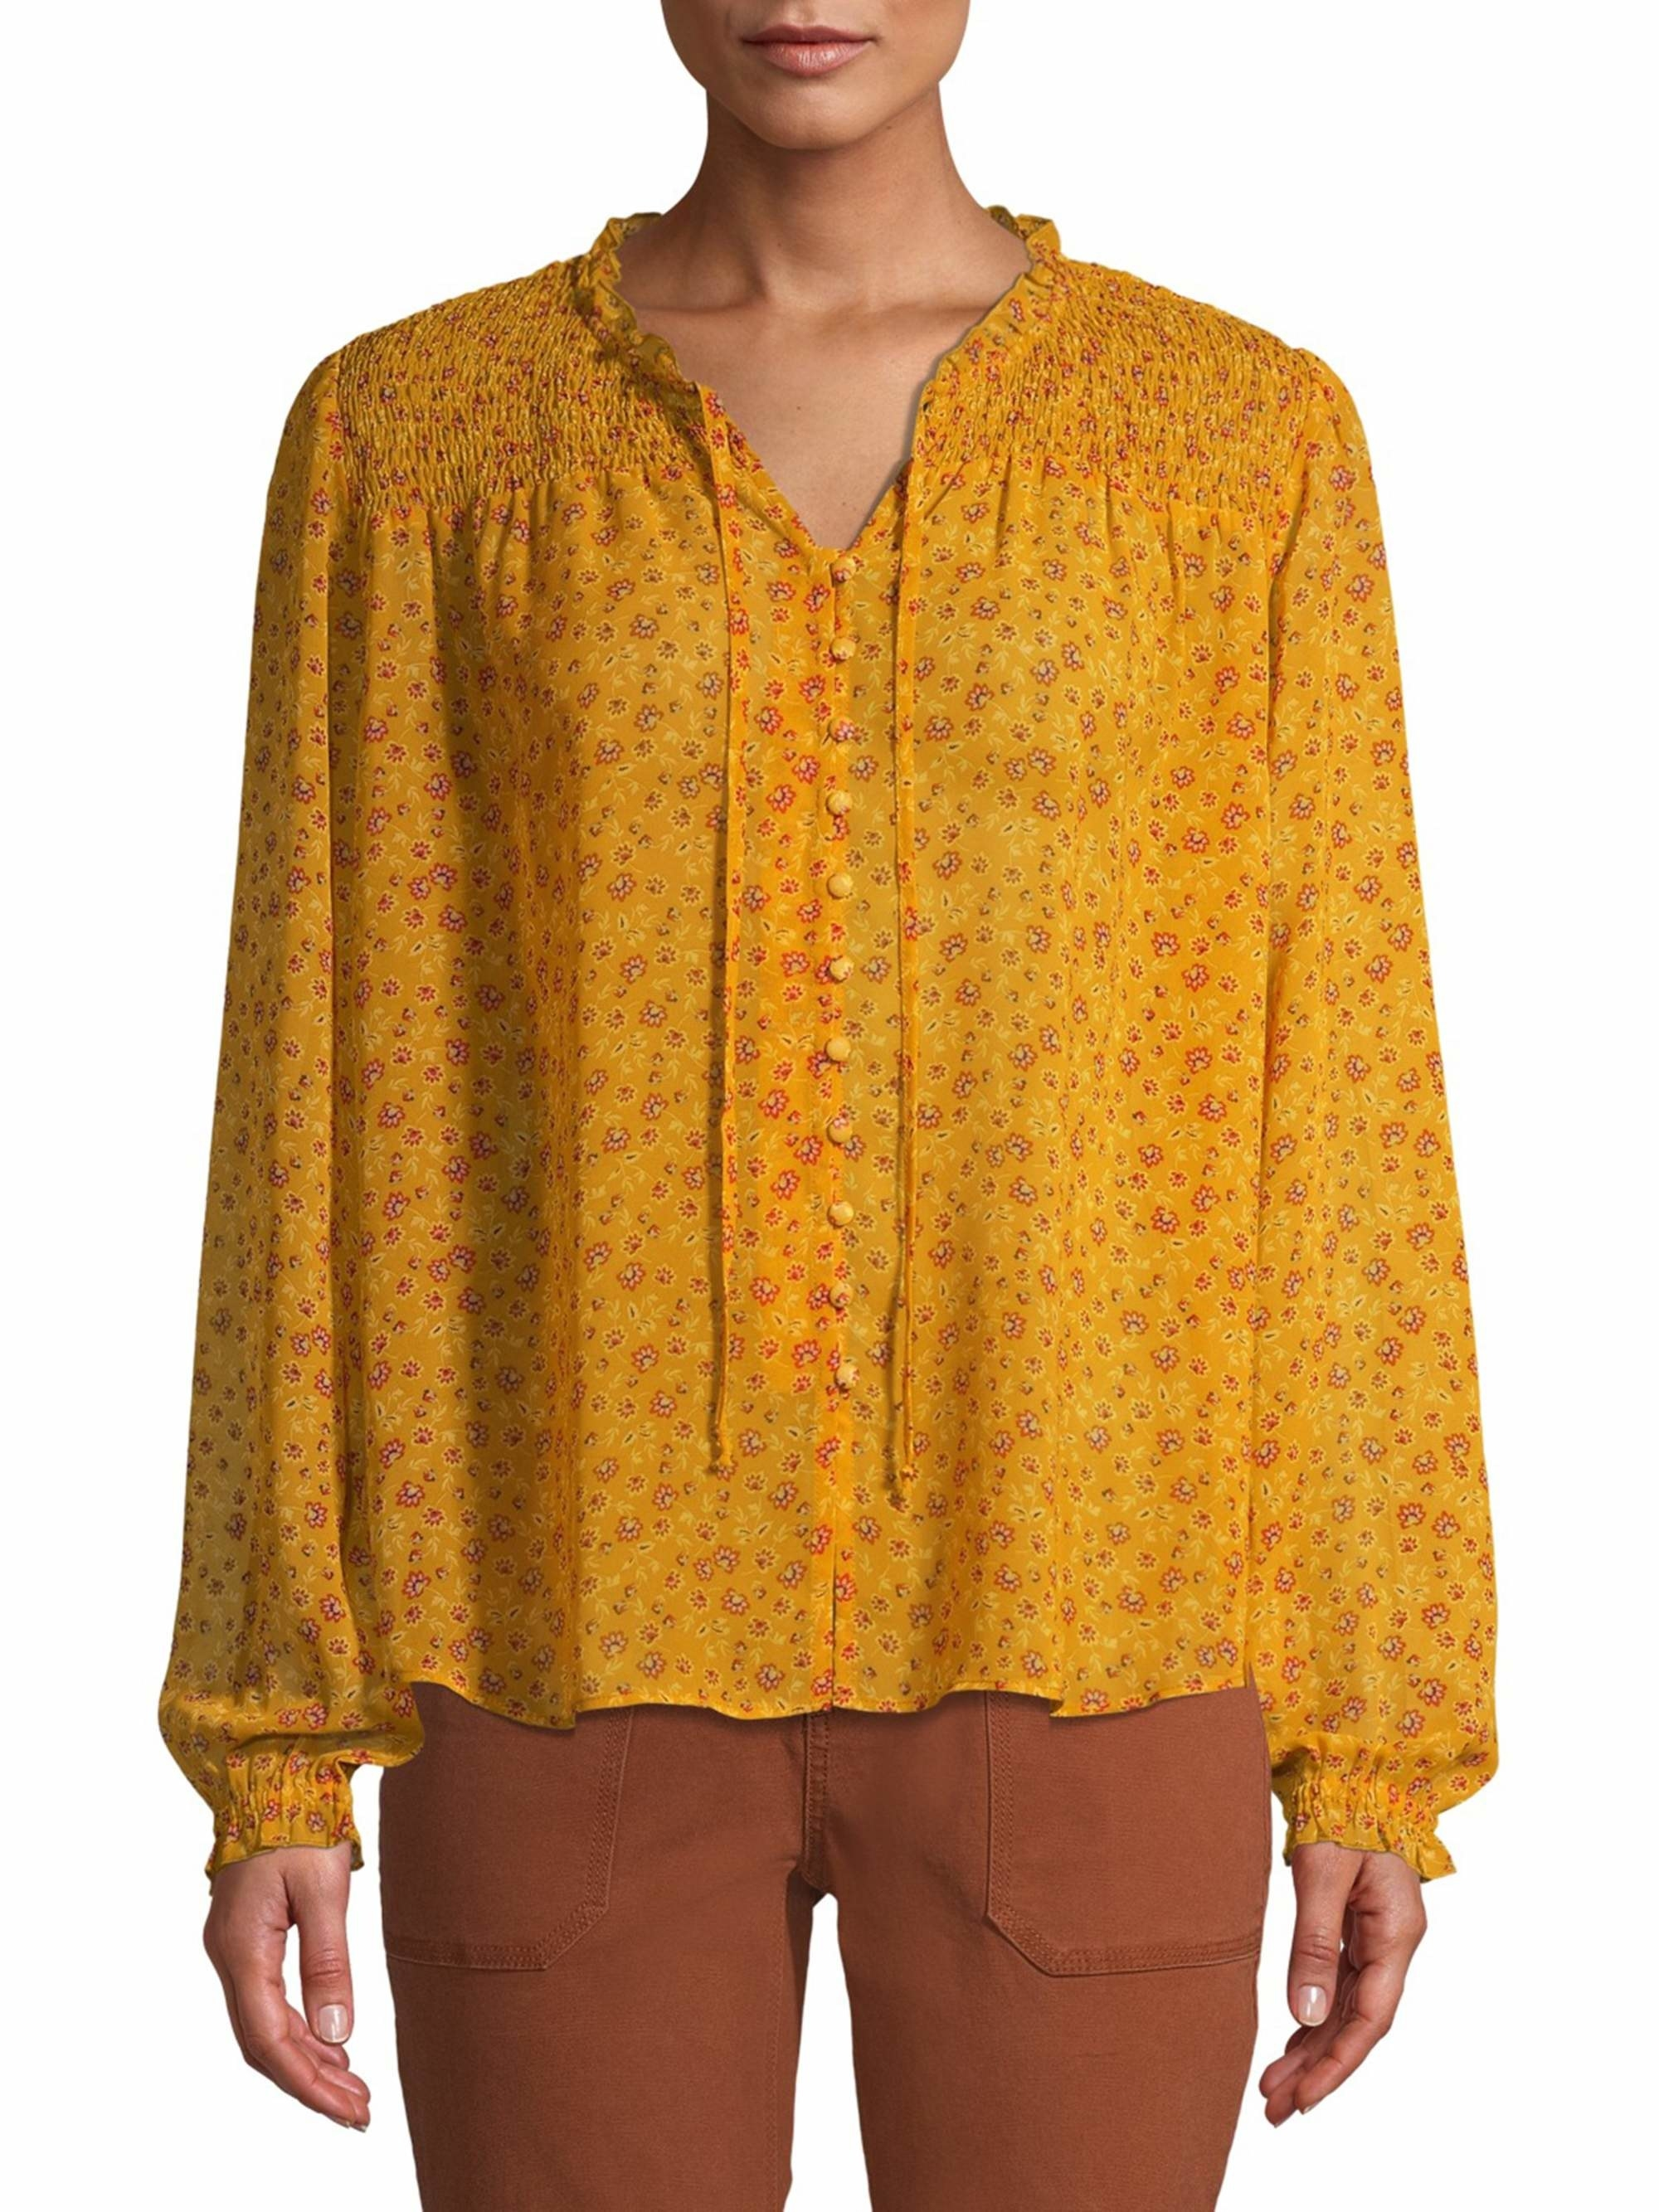 Model wears peasant top in yellow dust floral